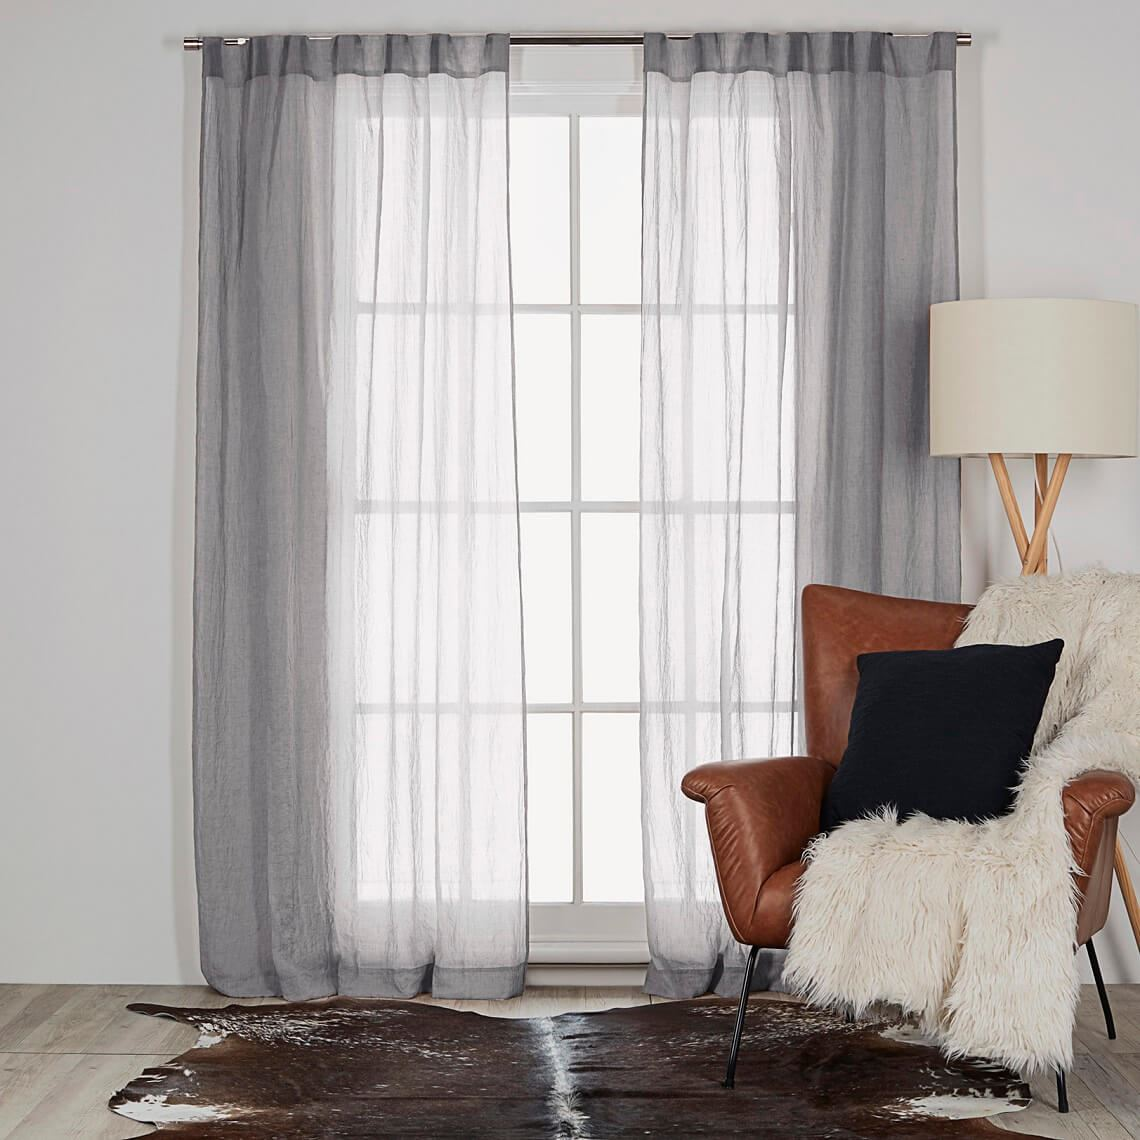 Angus Tab Curtain Size W 140cm x D 0cm x H 230cm in Silver 100% Polyester Freedom by Freedom, a Curtains for sale on Style Sourcebook